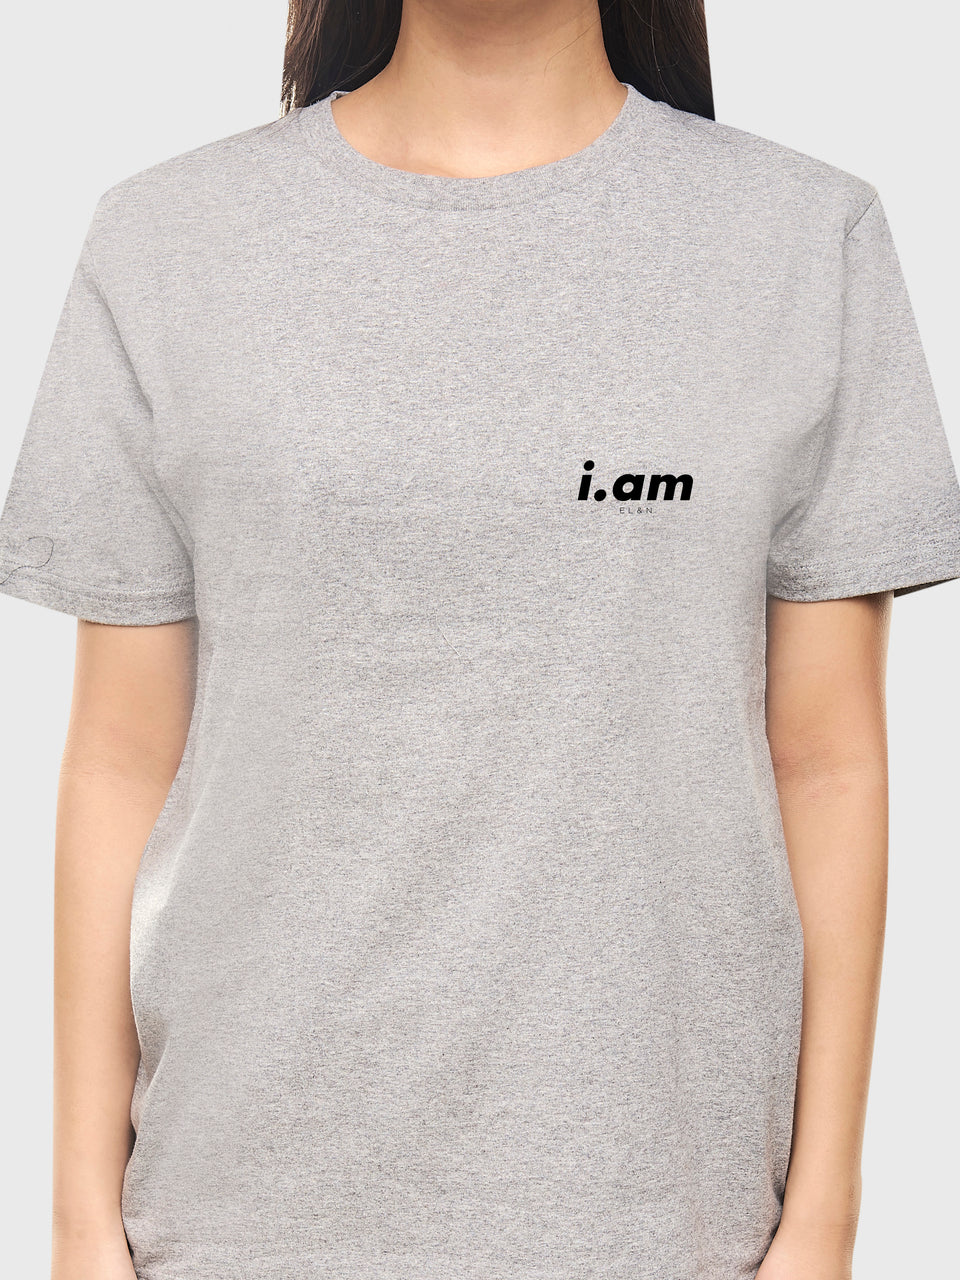 Not a copy - White / Grey - Not a copy - Unisex T